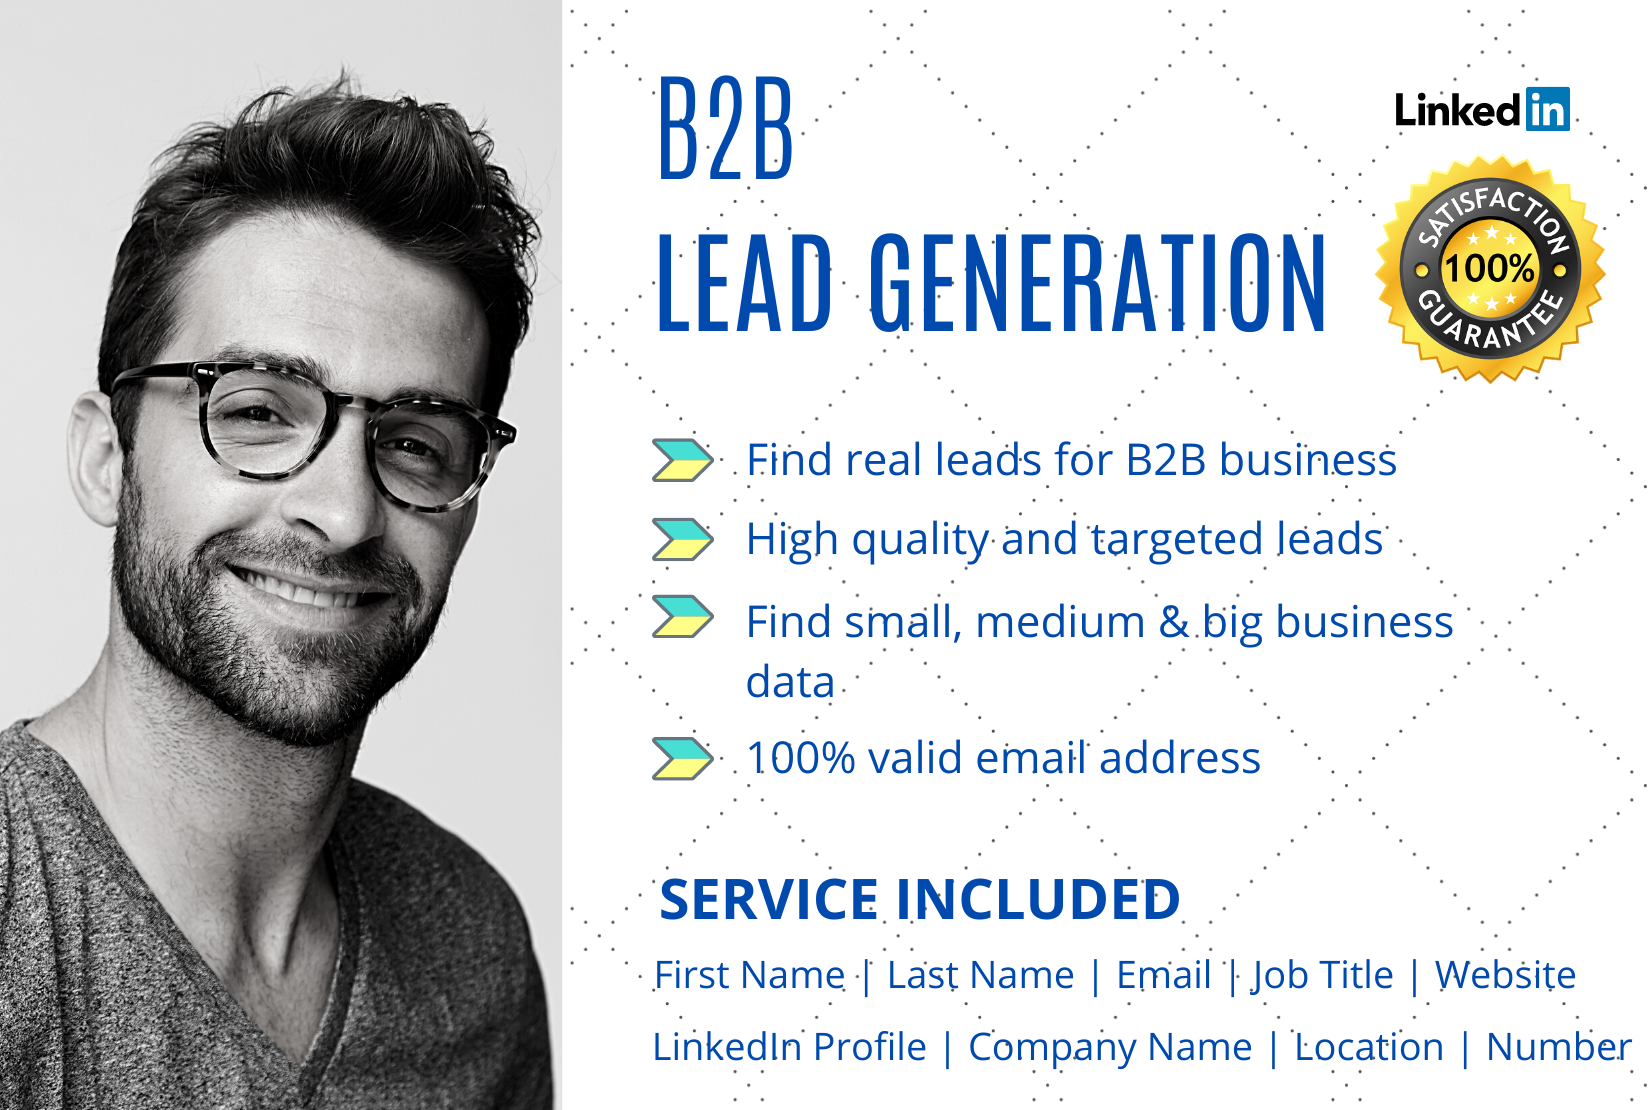 I will do 50 b2b lead generation, web research and data entry